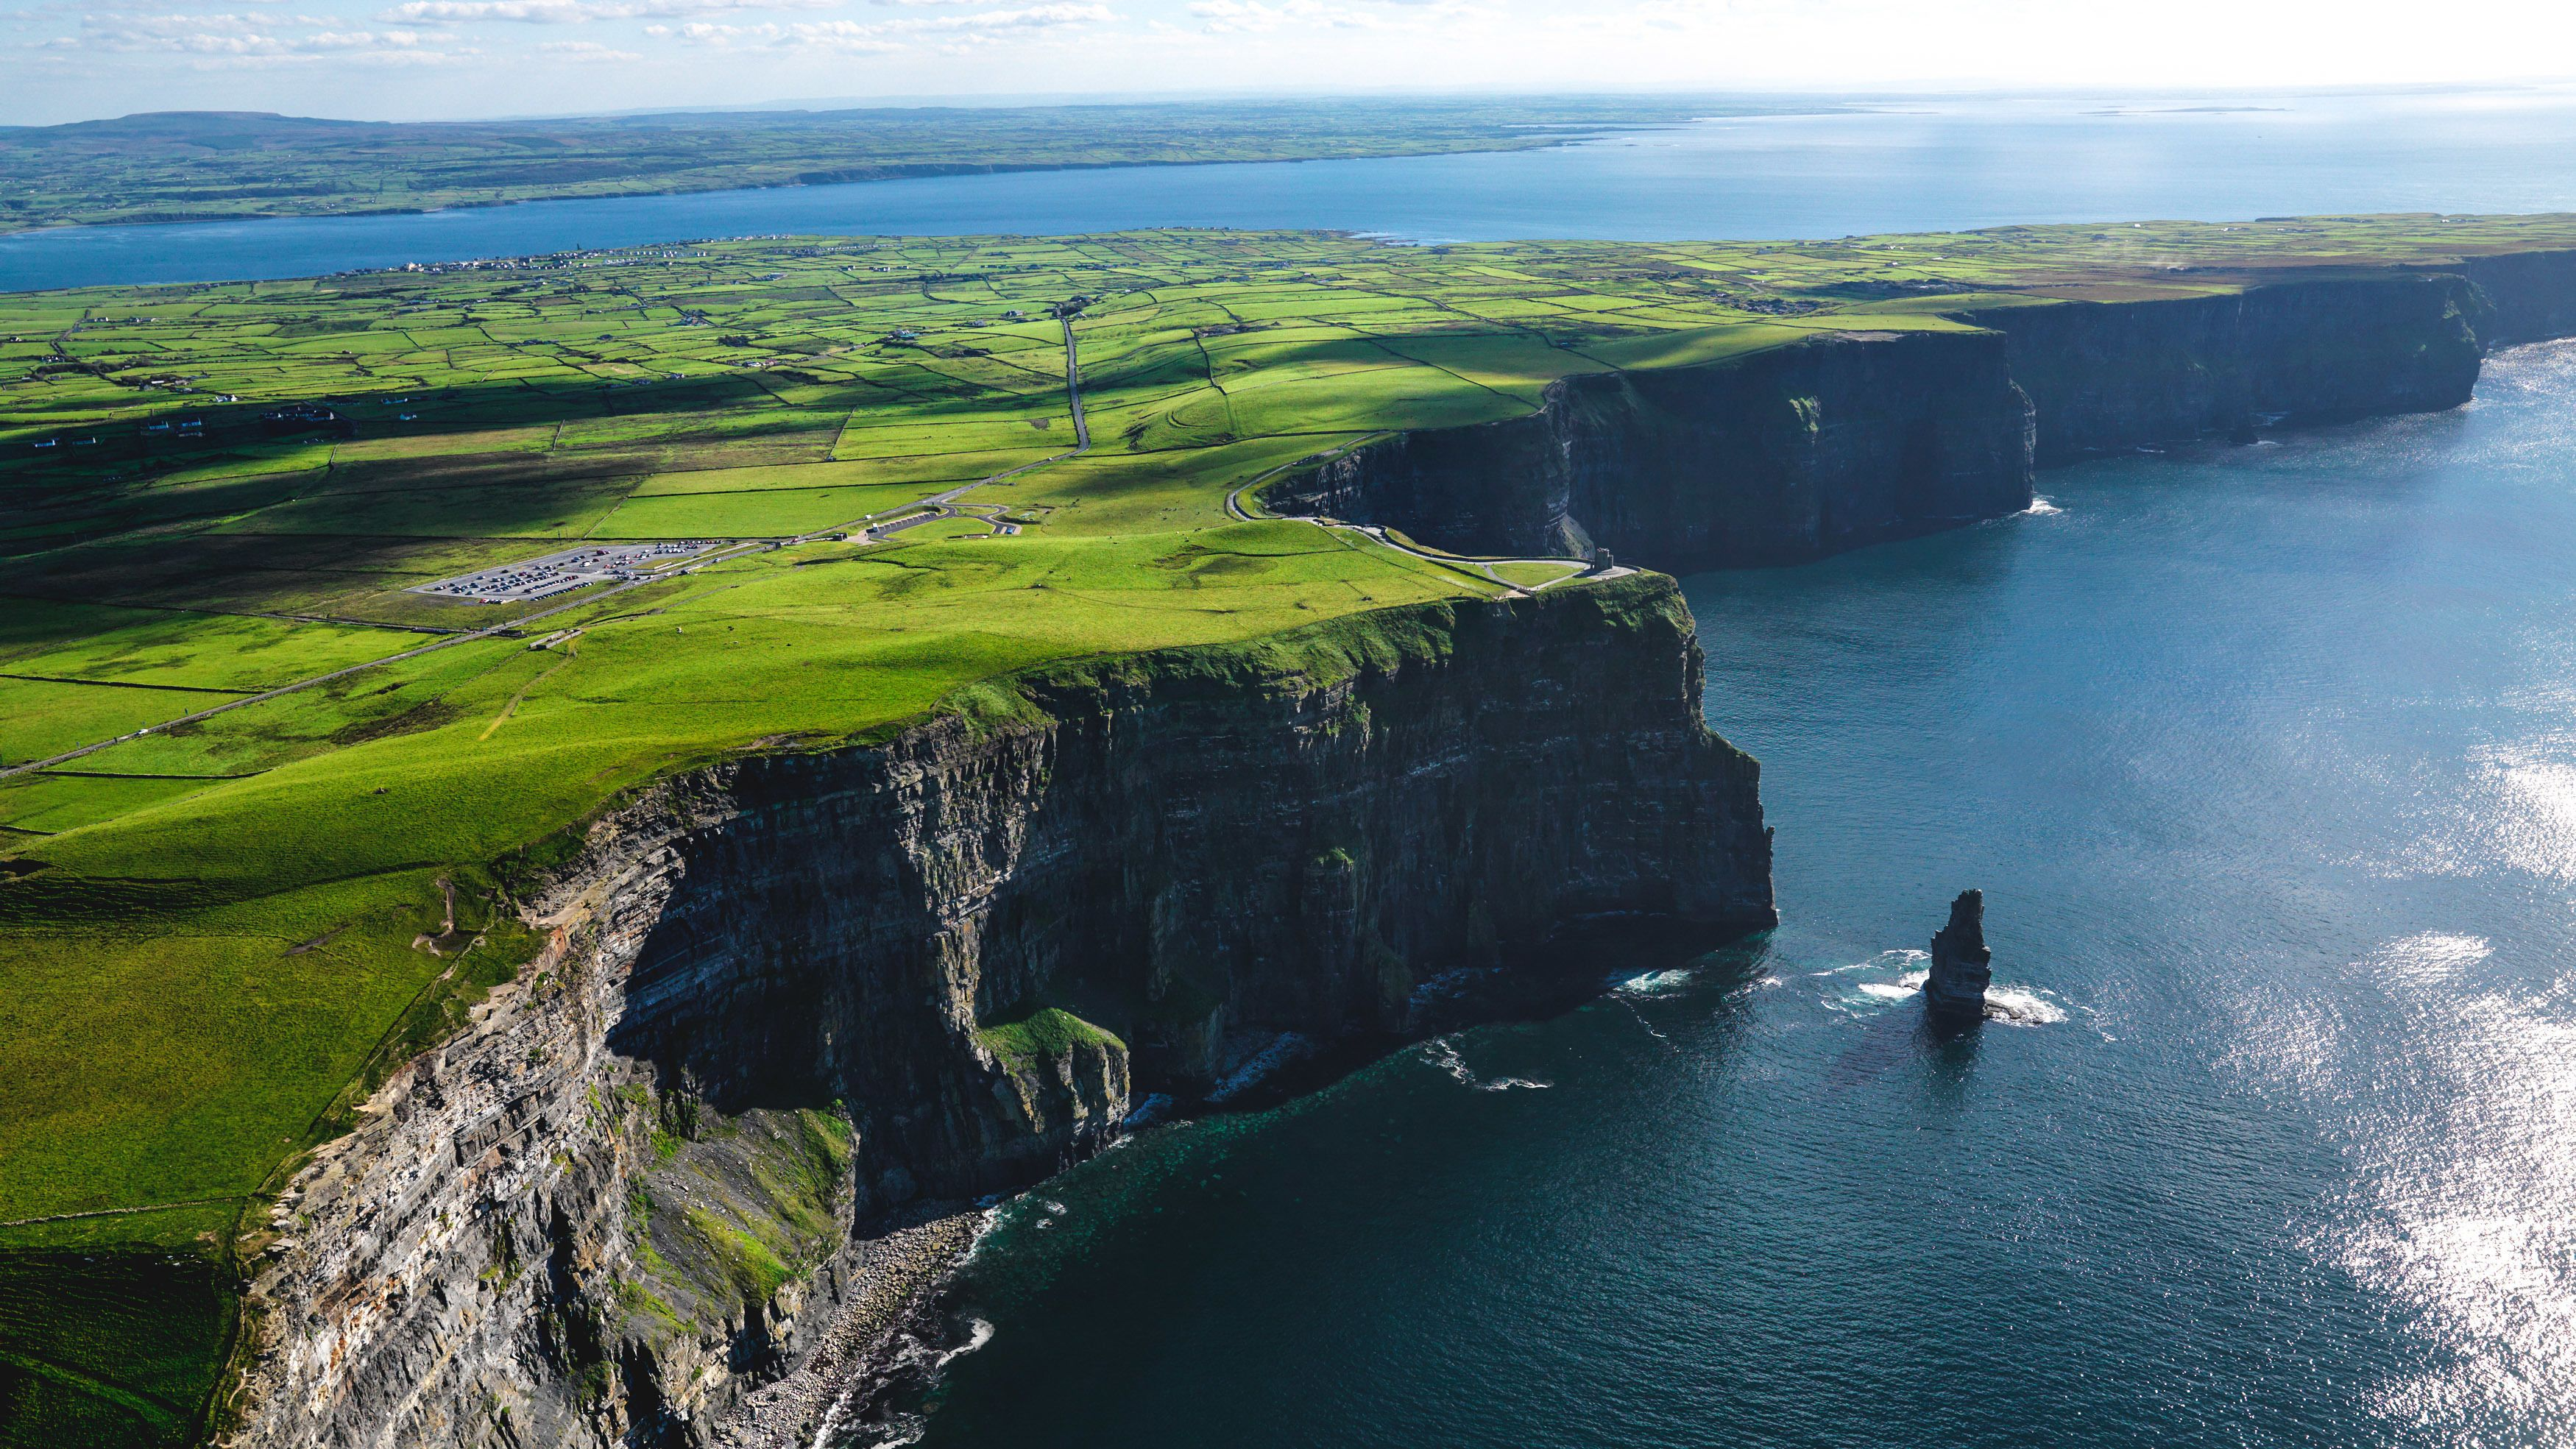 Aerial view of Cliffs of Moher during clear day.